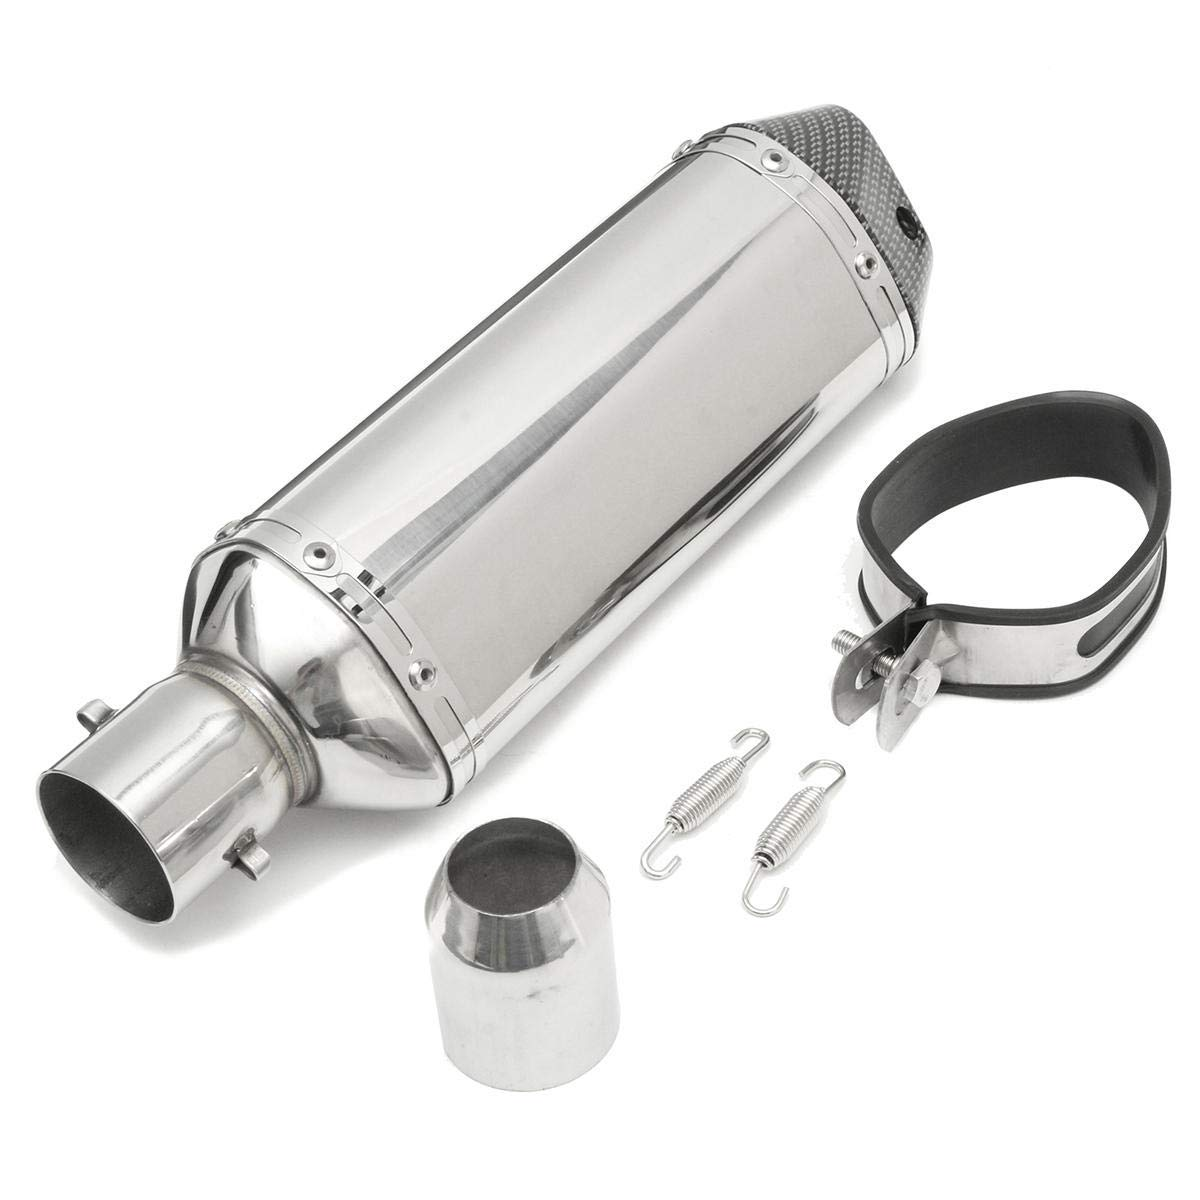 38-51mm Stainless Pipe Muffler Exhaust w/Silencer Motorcycle Dirt Street Bike - Body & Frame Exhaust Systems & Muffler Parts - 1 X Exhaust Pipe